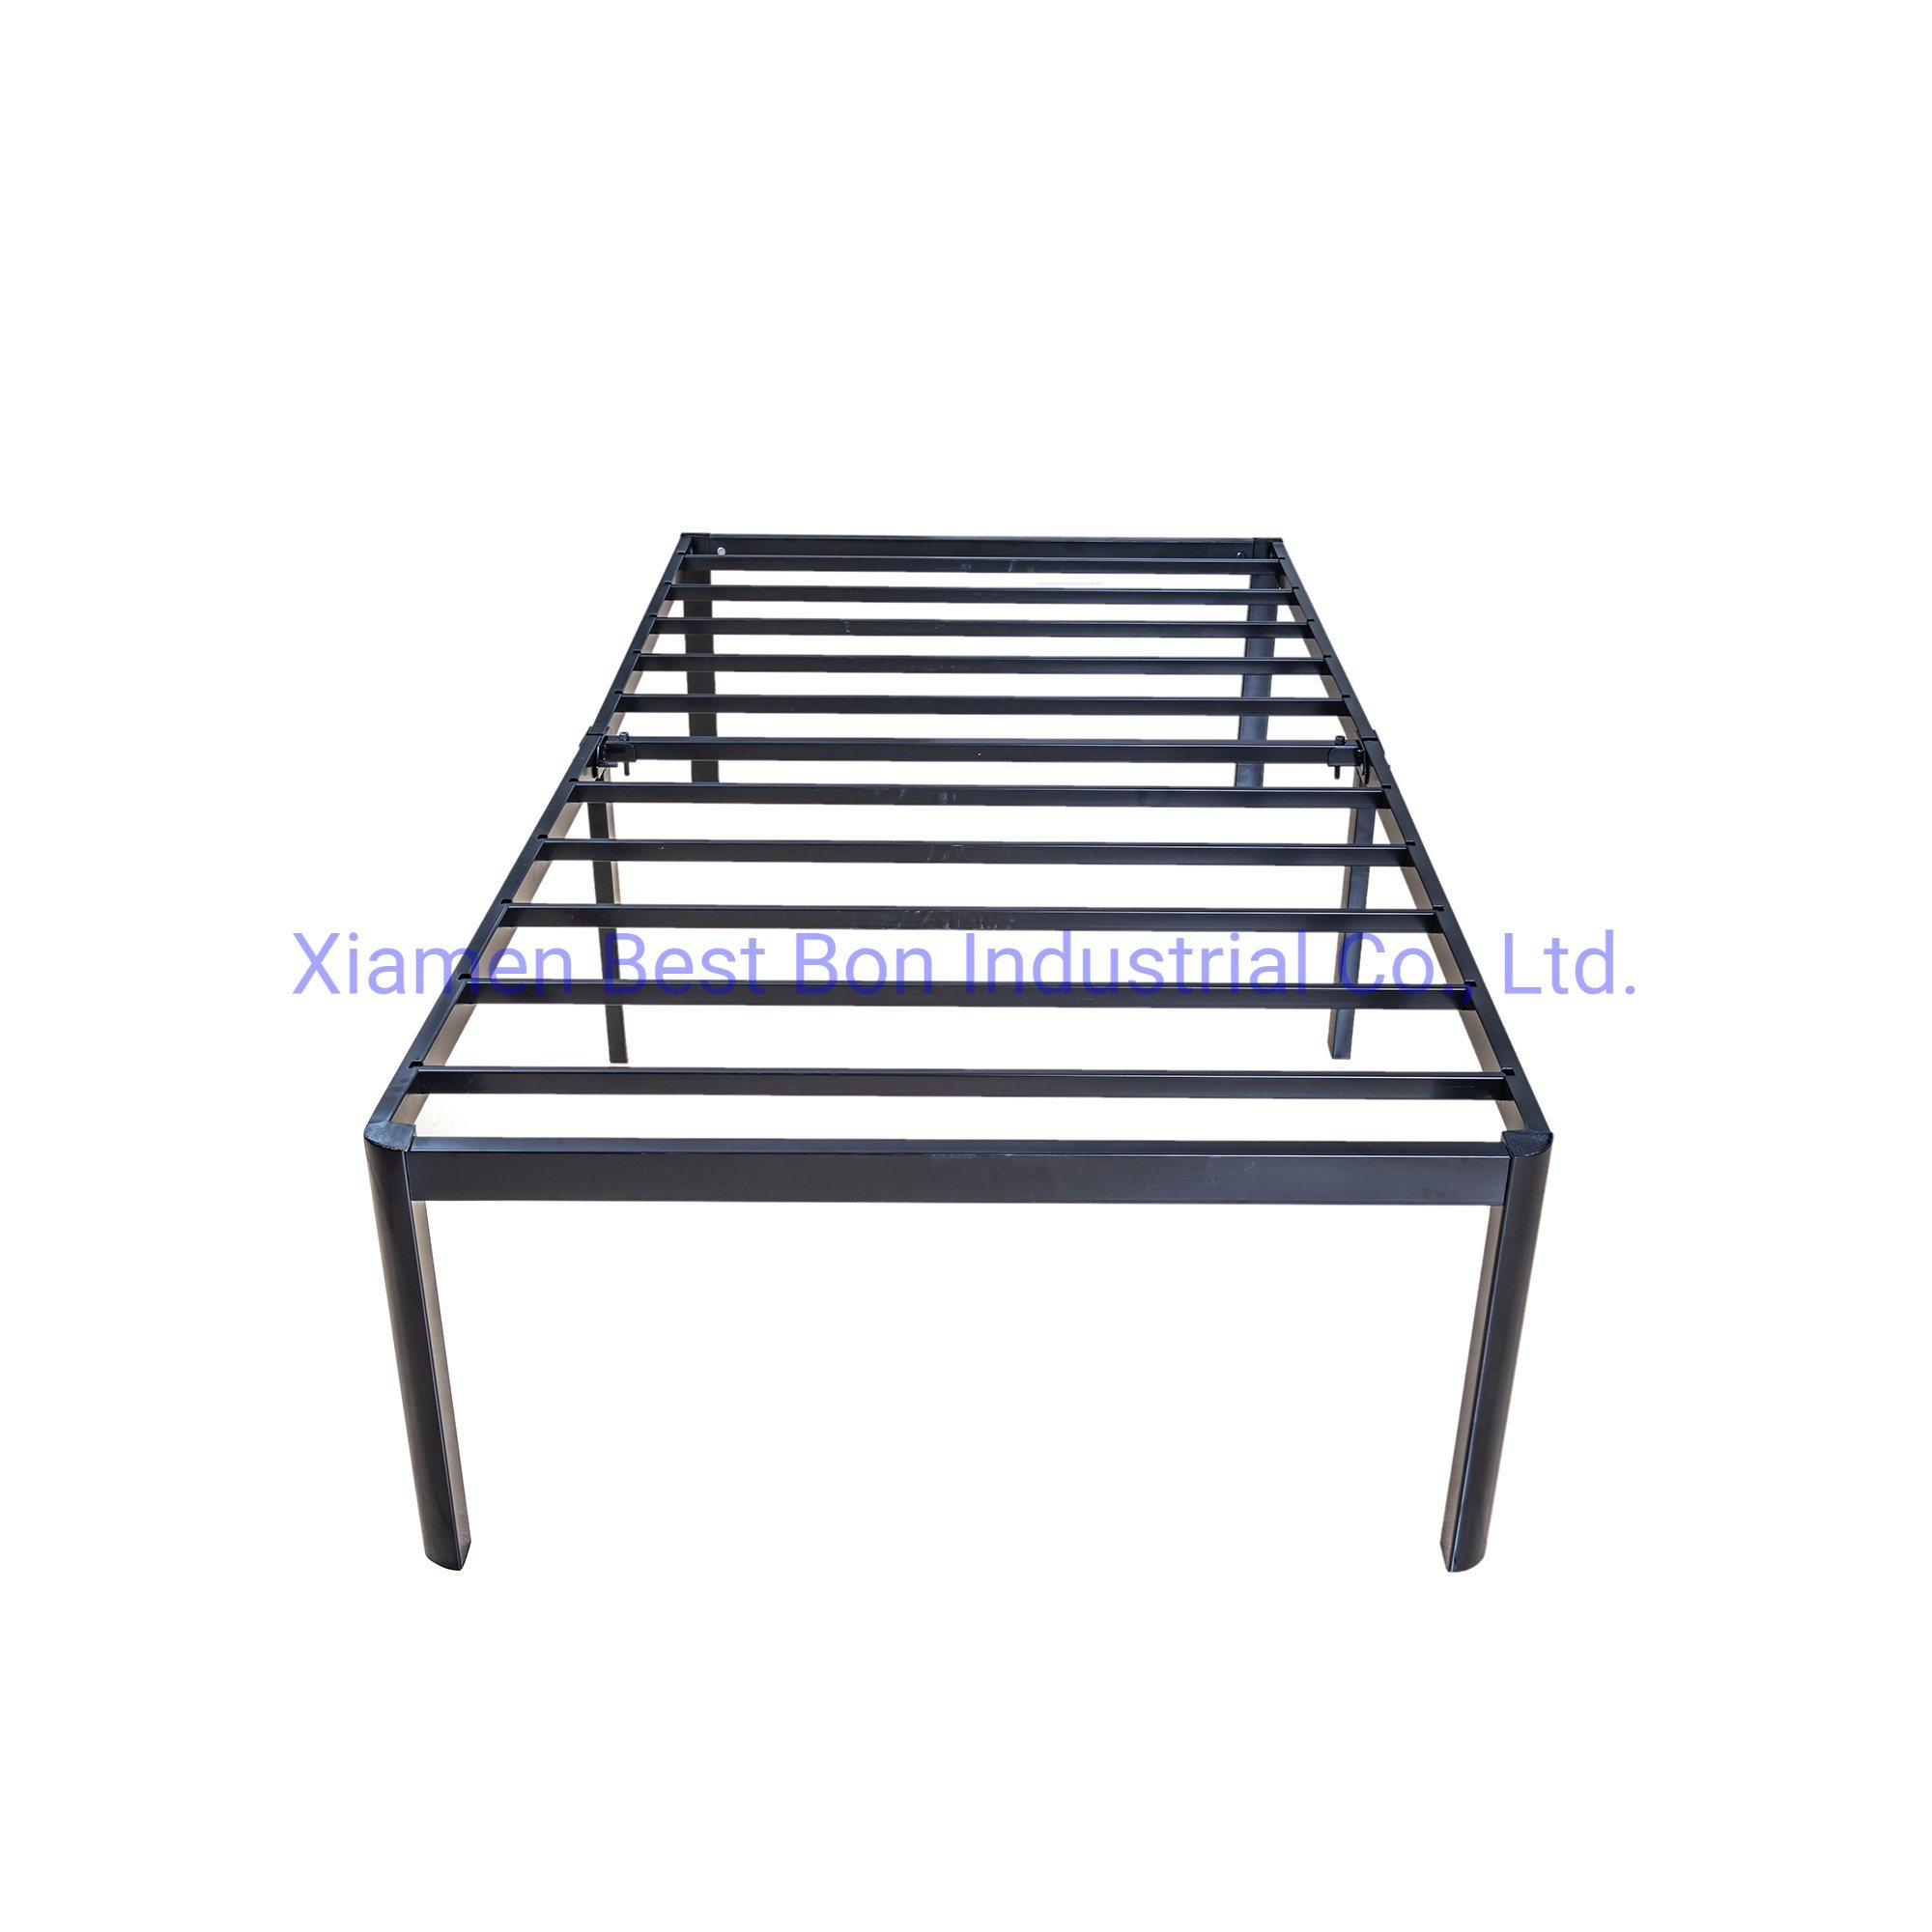 China 14 Black Metal Twin Xl Size Iron Side Bed With Keel Bed Frame Trendy Style Fashion High End Photos Pictures Made In China Com